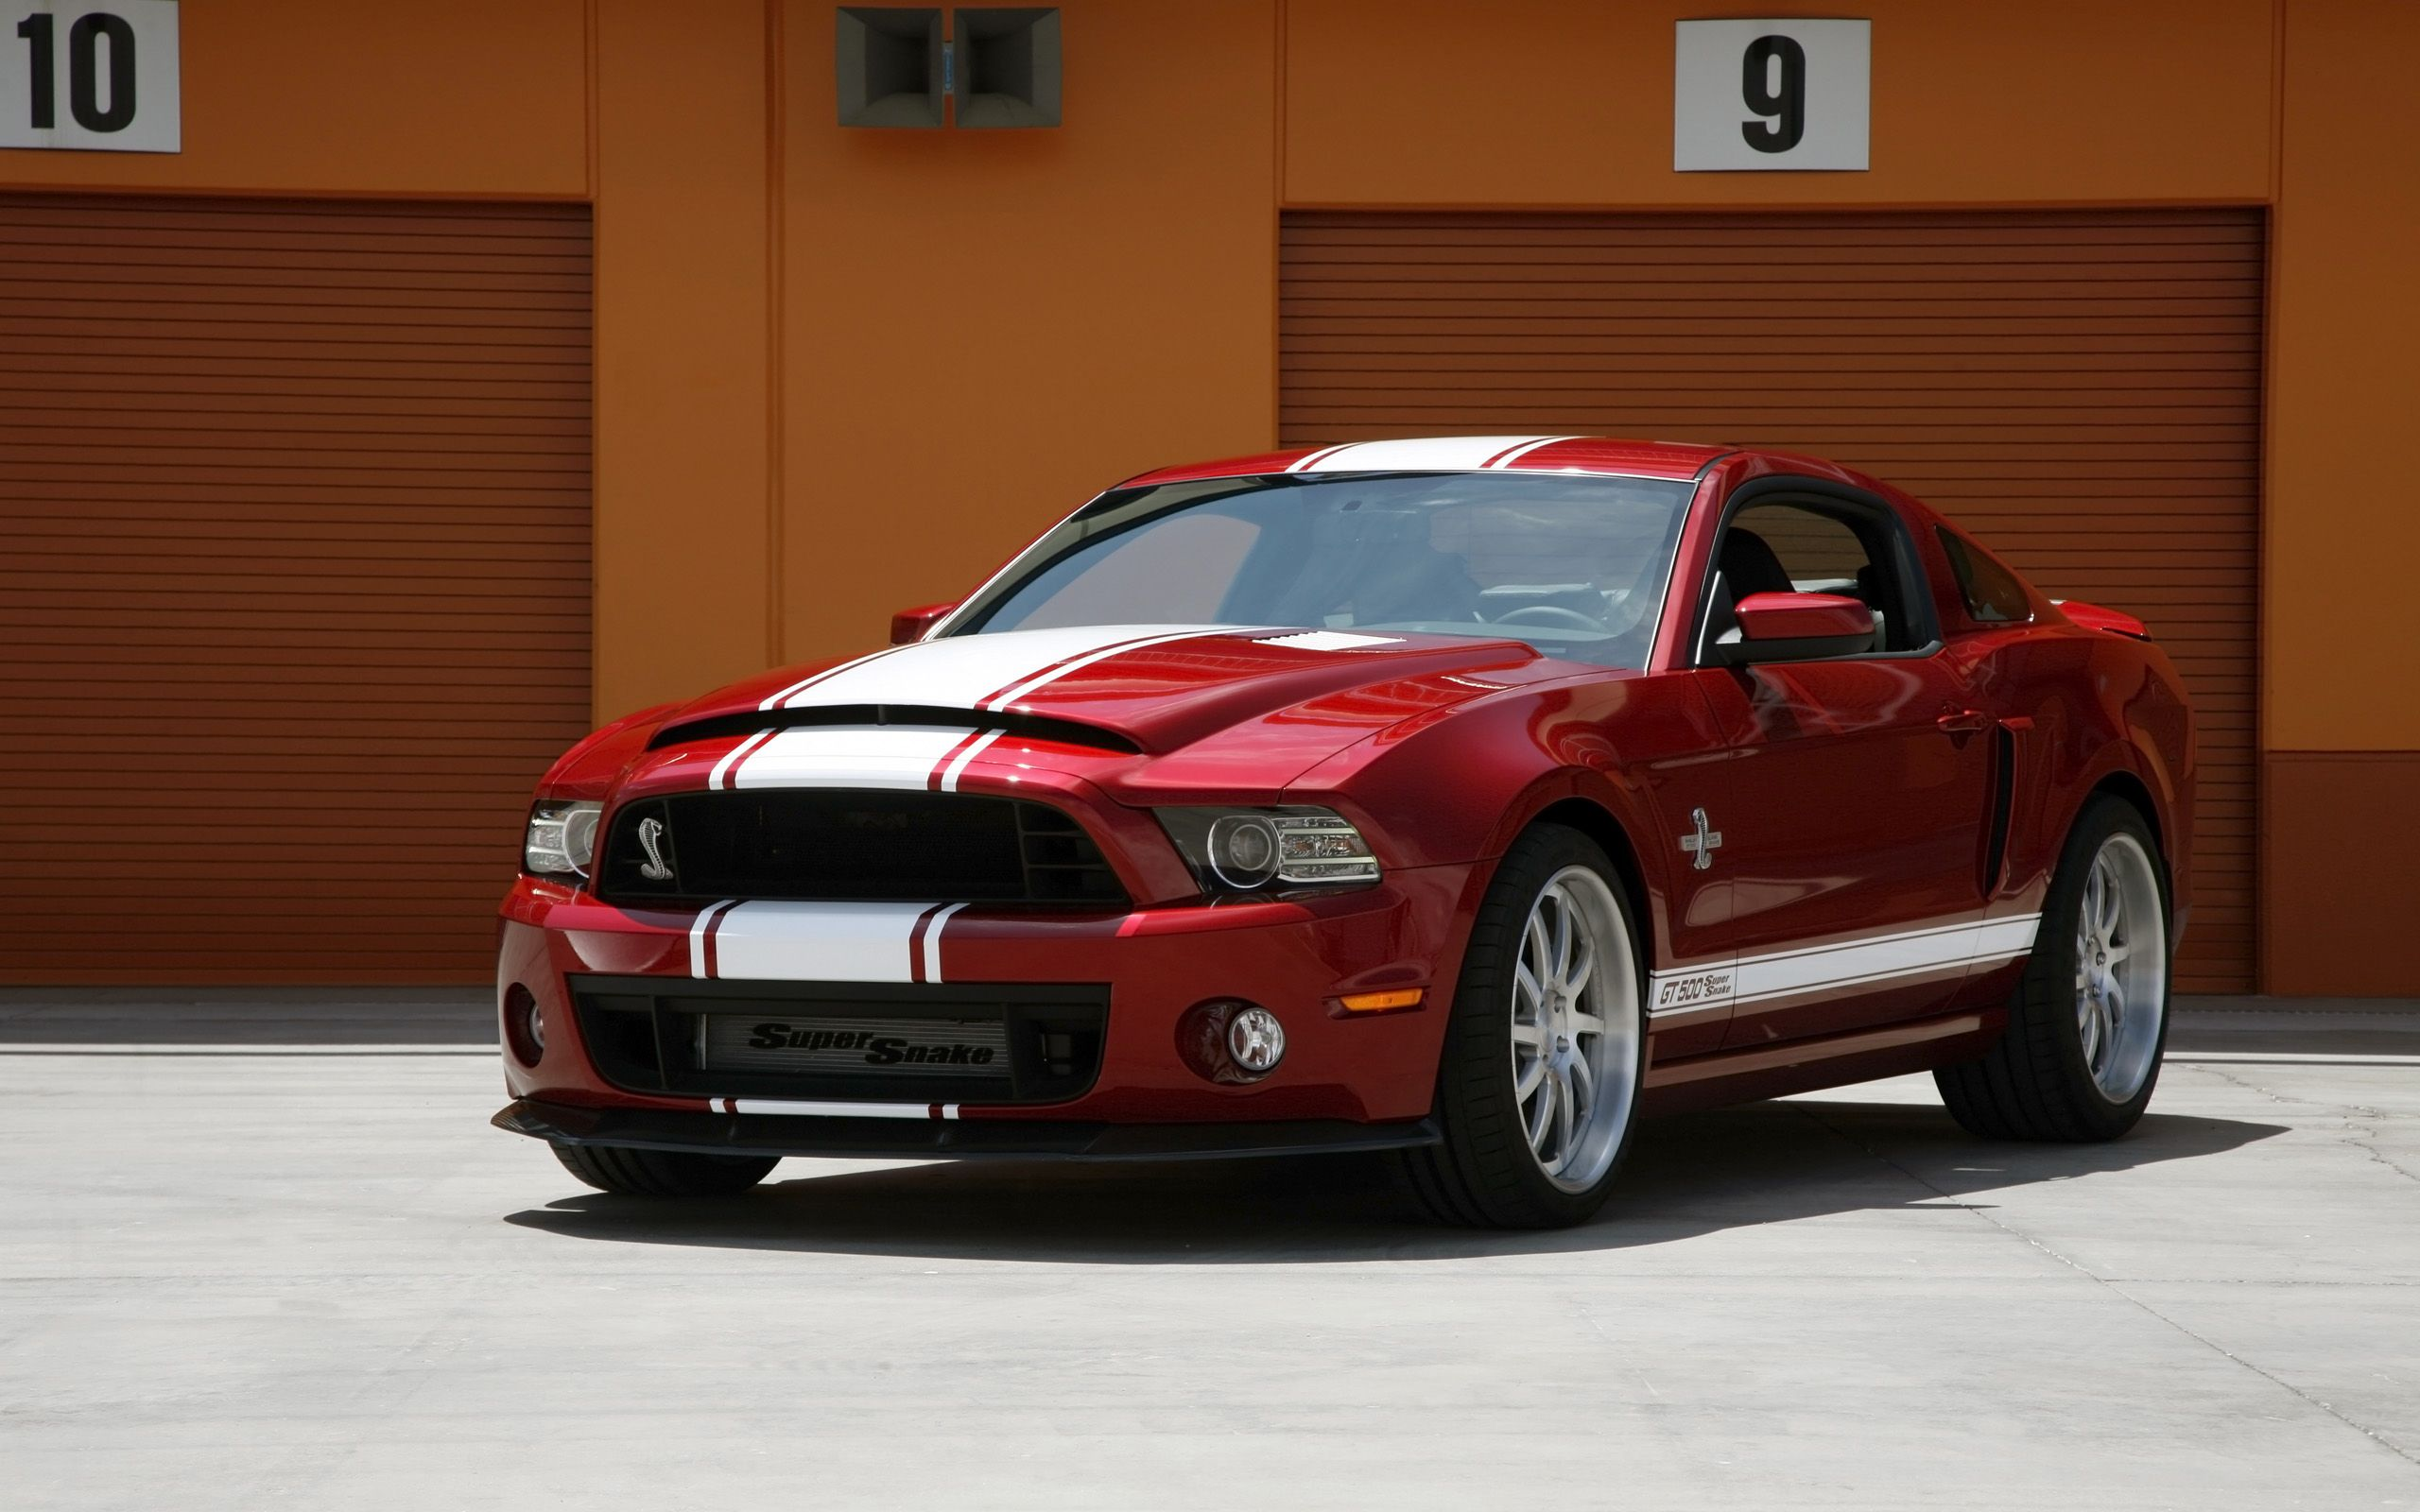 2014 ford shelby gt500 - 2014 Ford Mustang Shelby Gt500 Super Snake Hd Car Wallpaper